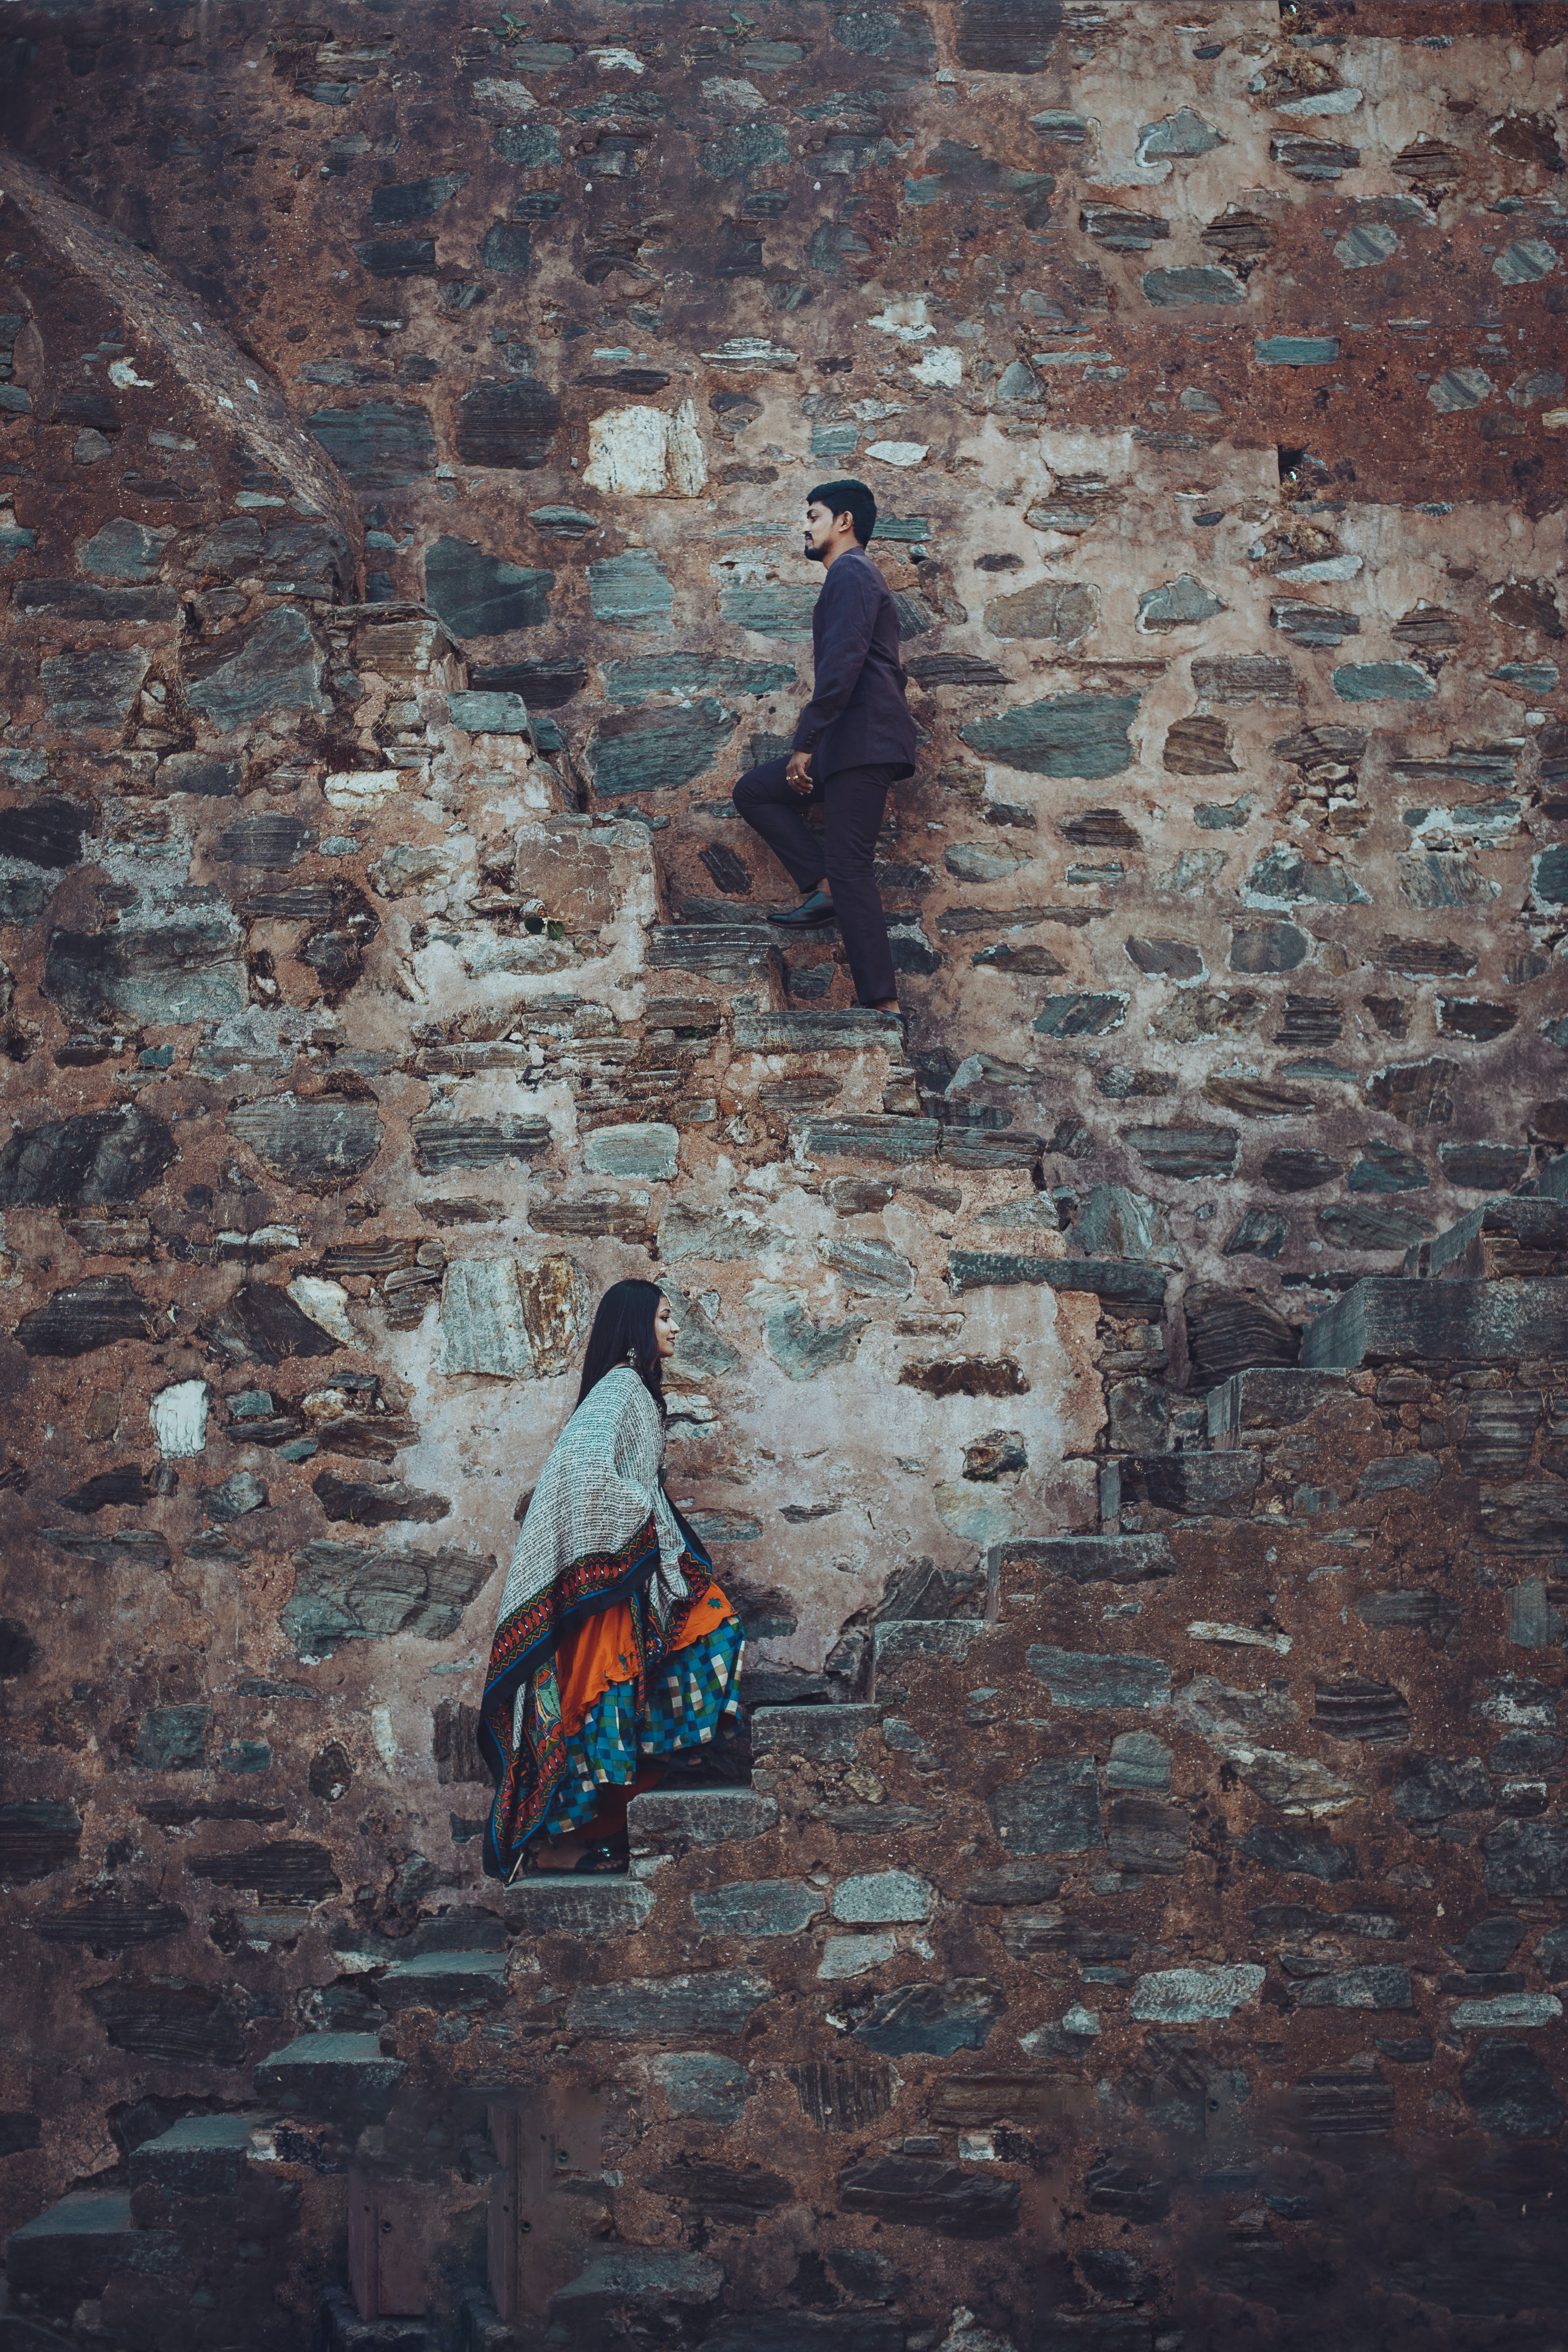 Man and Woman Walking Up the Stairs